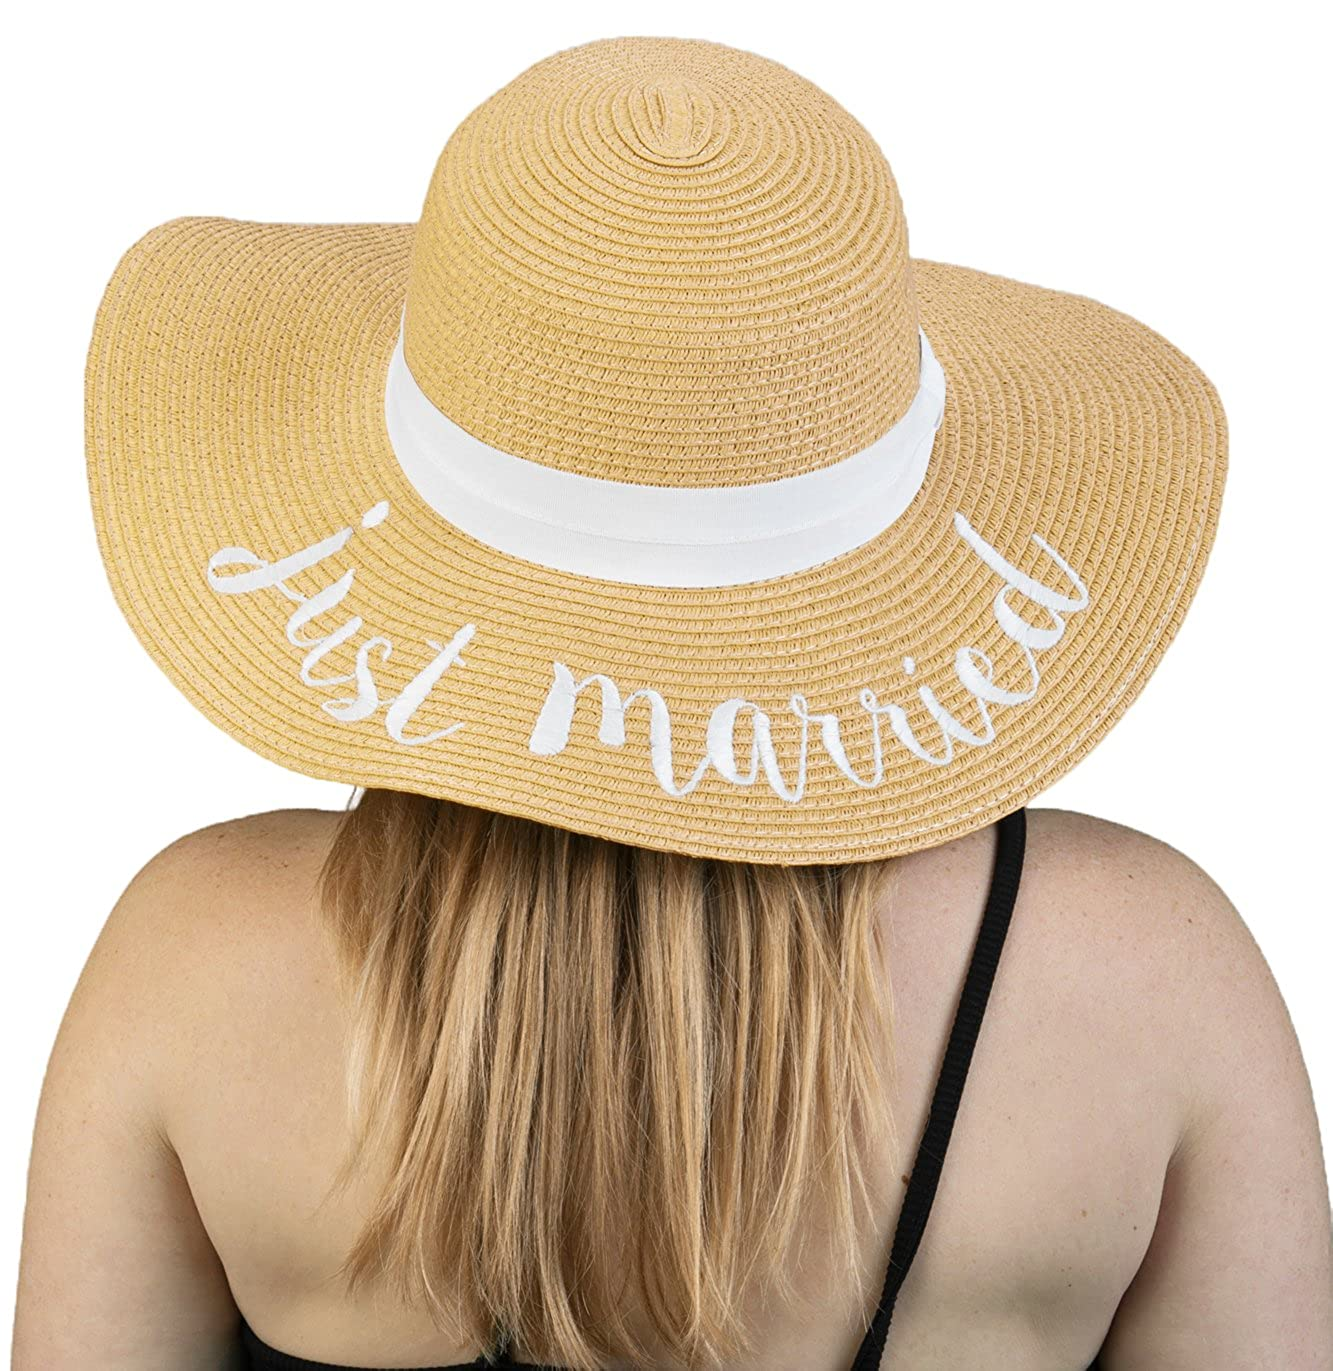 Funky Junque Women's Bold Cursive Embroidered Adjustable Beach Floppy Sun Hat Always On Vacay One Size H-2017-AOV-FJ